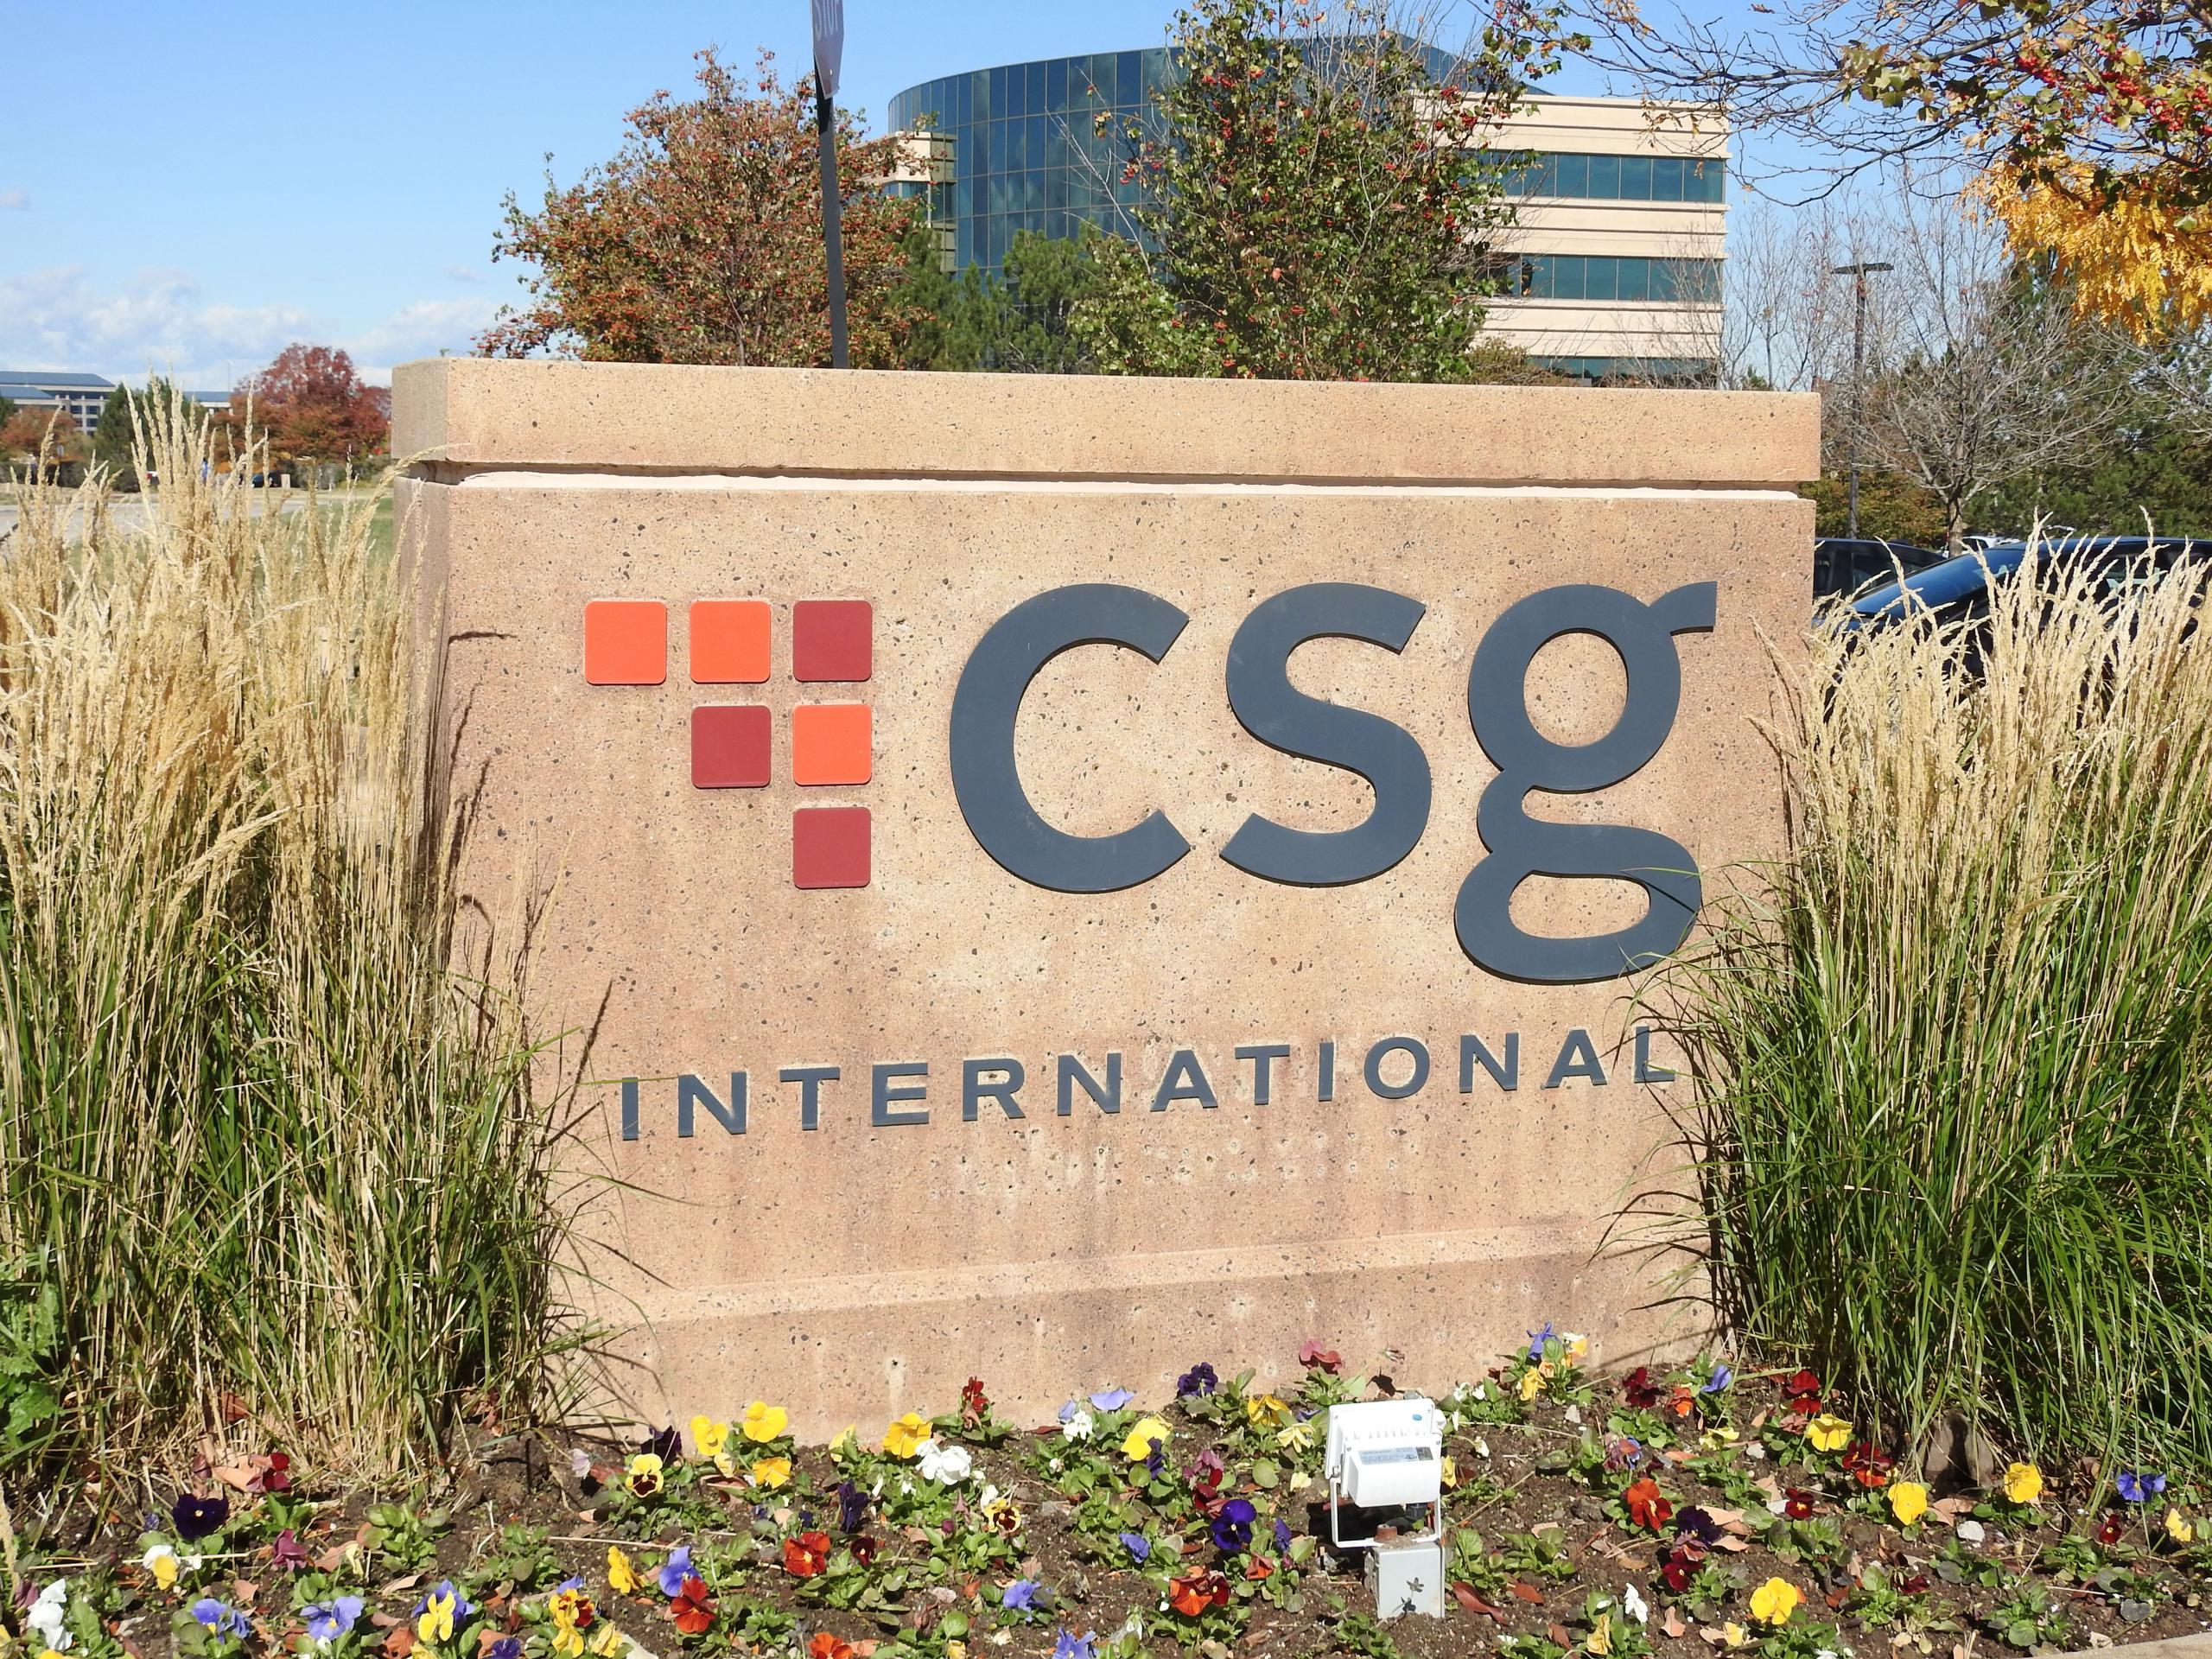 Entrance to CSG Systems International's corporate headquarters in Englewood, Colorado.